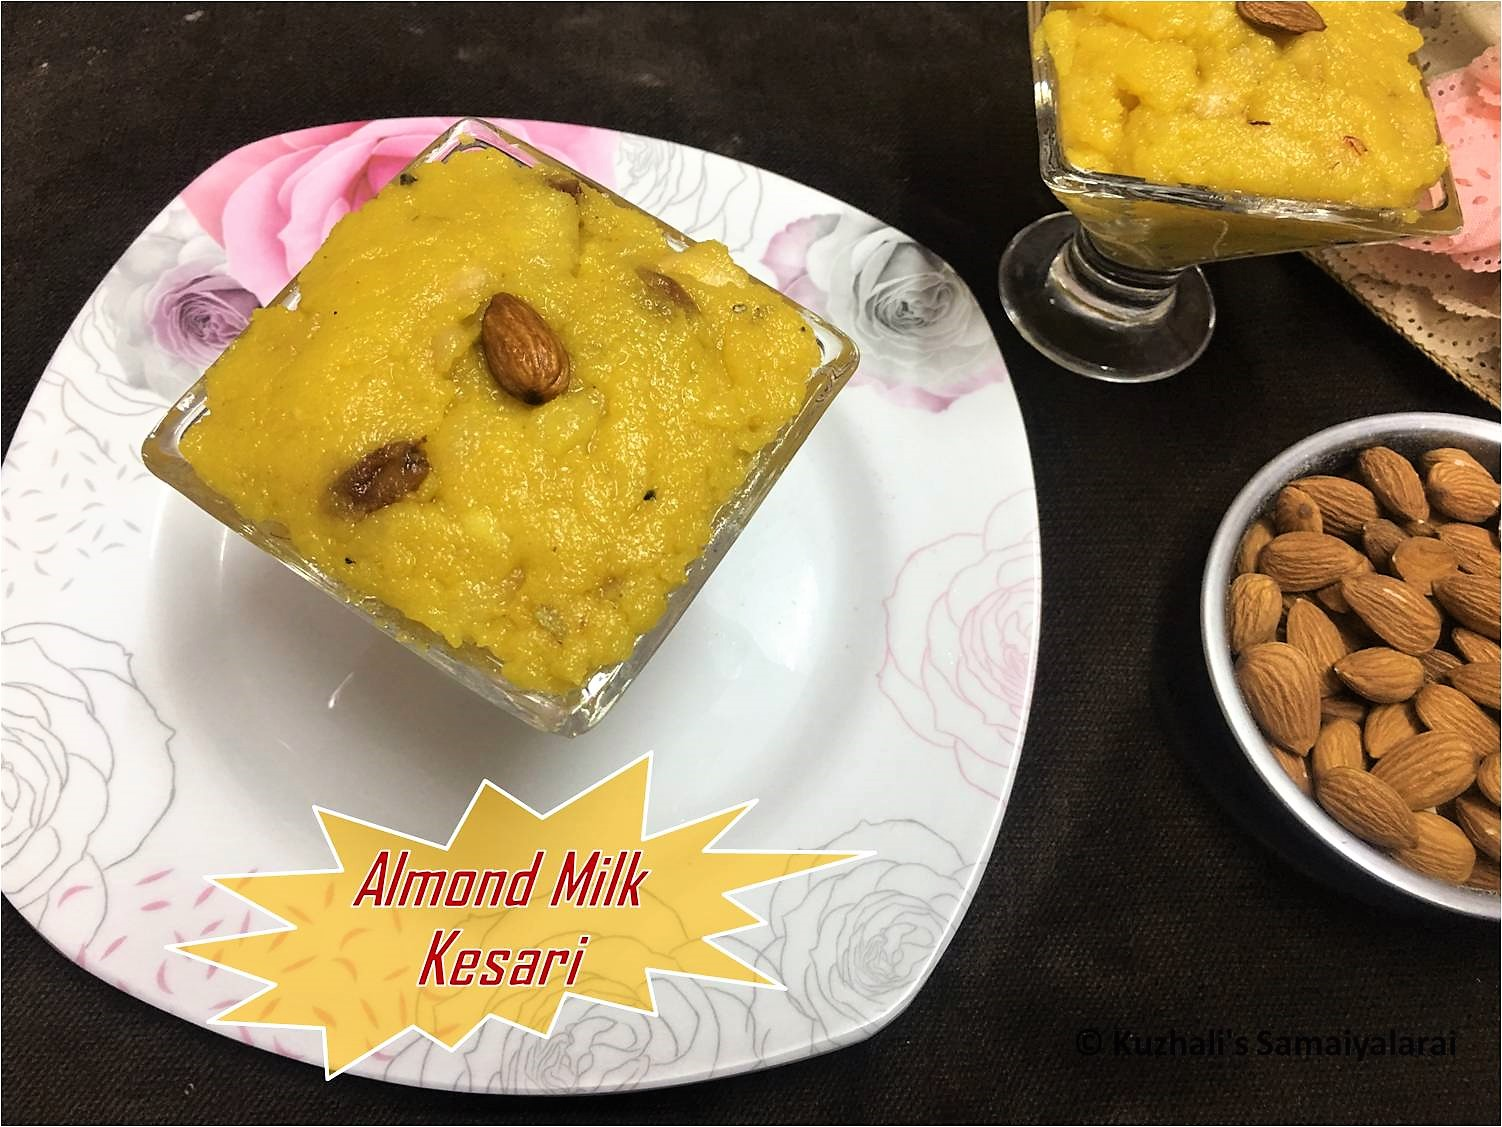 http://www.kuzhalisamaiyalarai.in/2017/05/almond-milk-kesari-how-to-make-milk.html